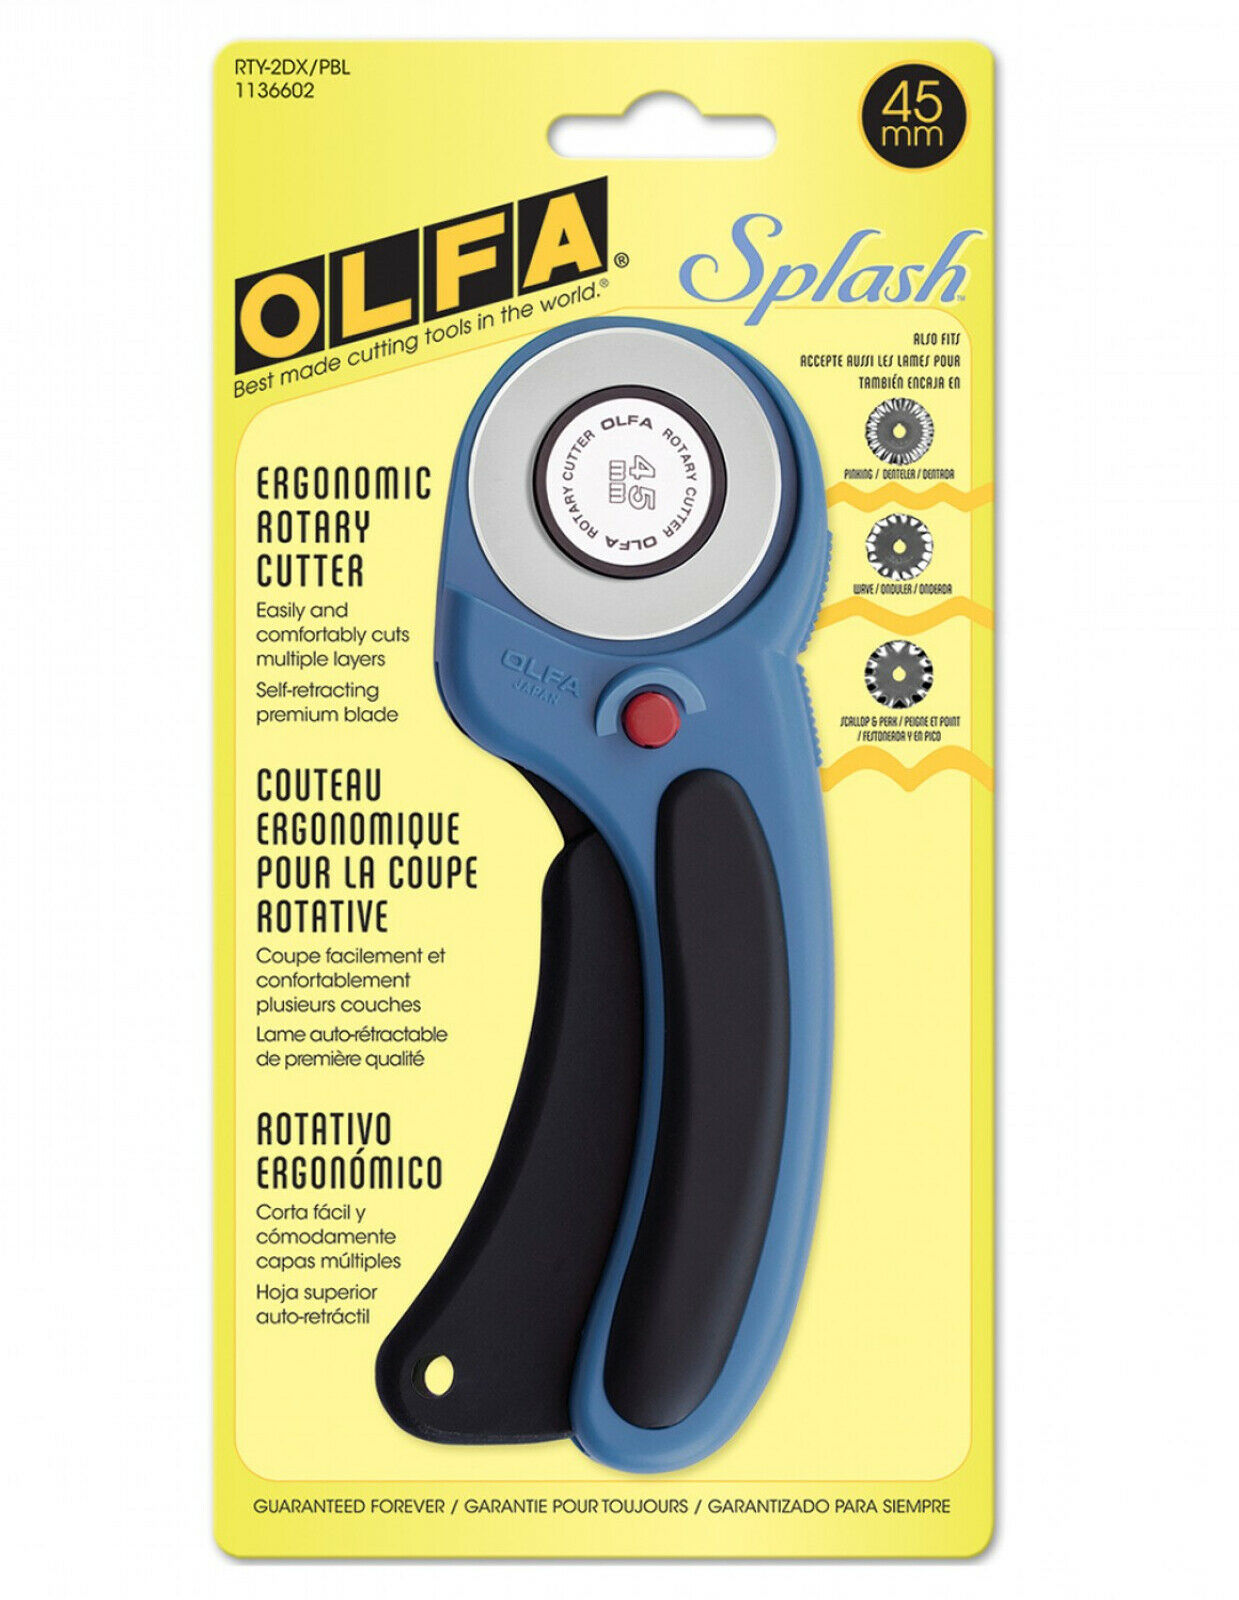 OLFA 45mm RTY-2DX/PBL Ergonomic Rotary Cutter, Pacific Blue